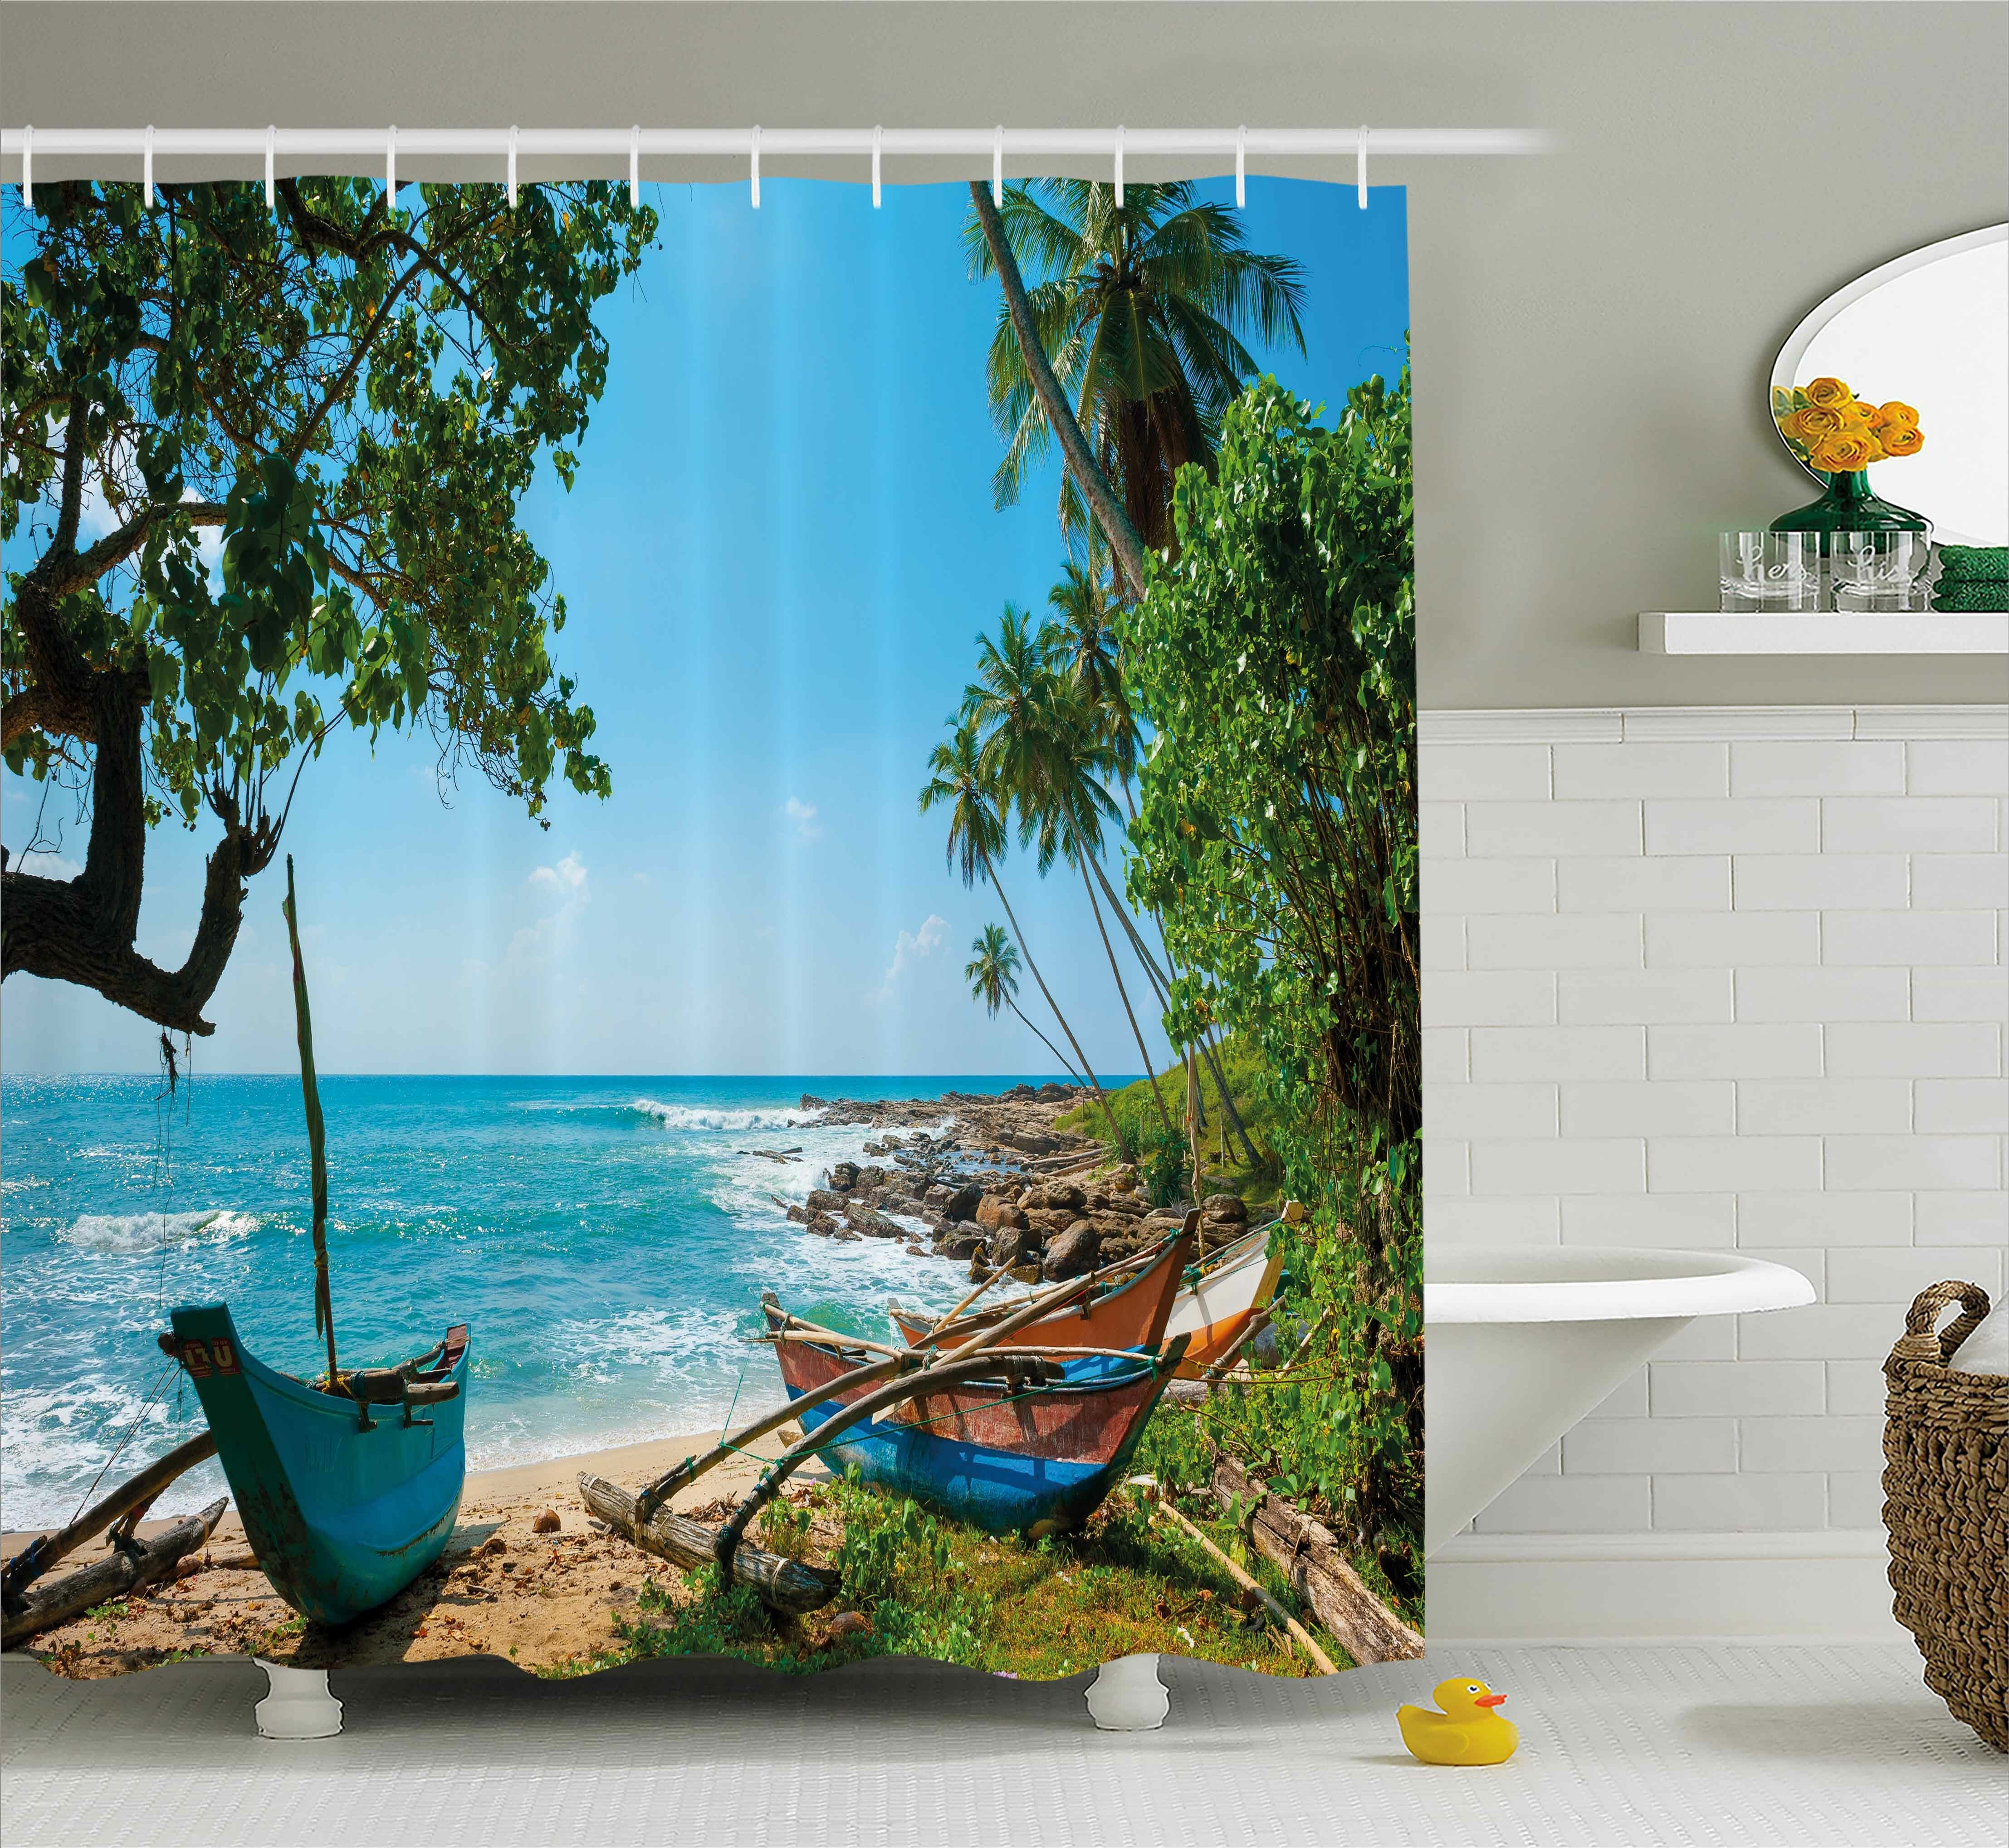 Tropical Beach And Peaceful Ocean: Bayou Breeze Renato Beach Tropical Ocean Scenery With Palm